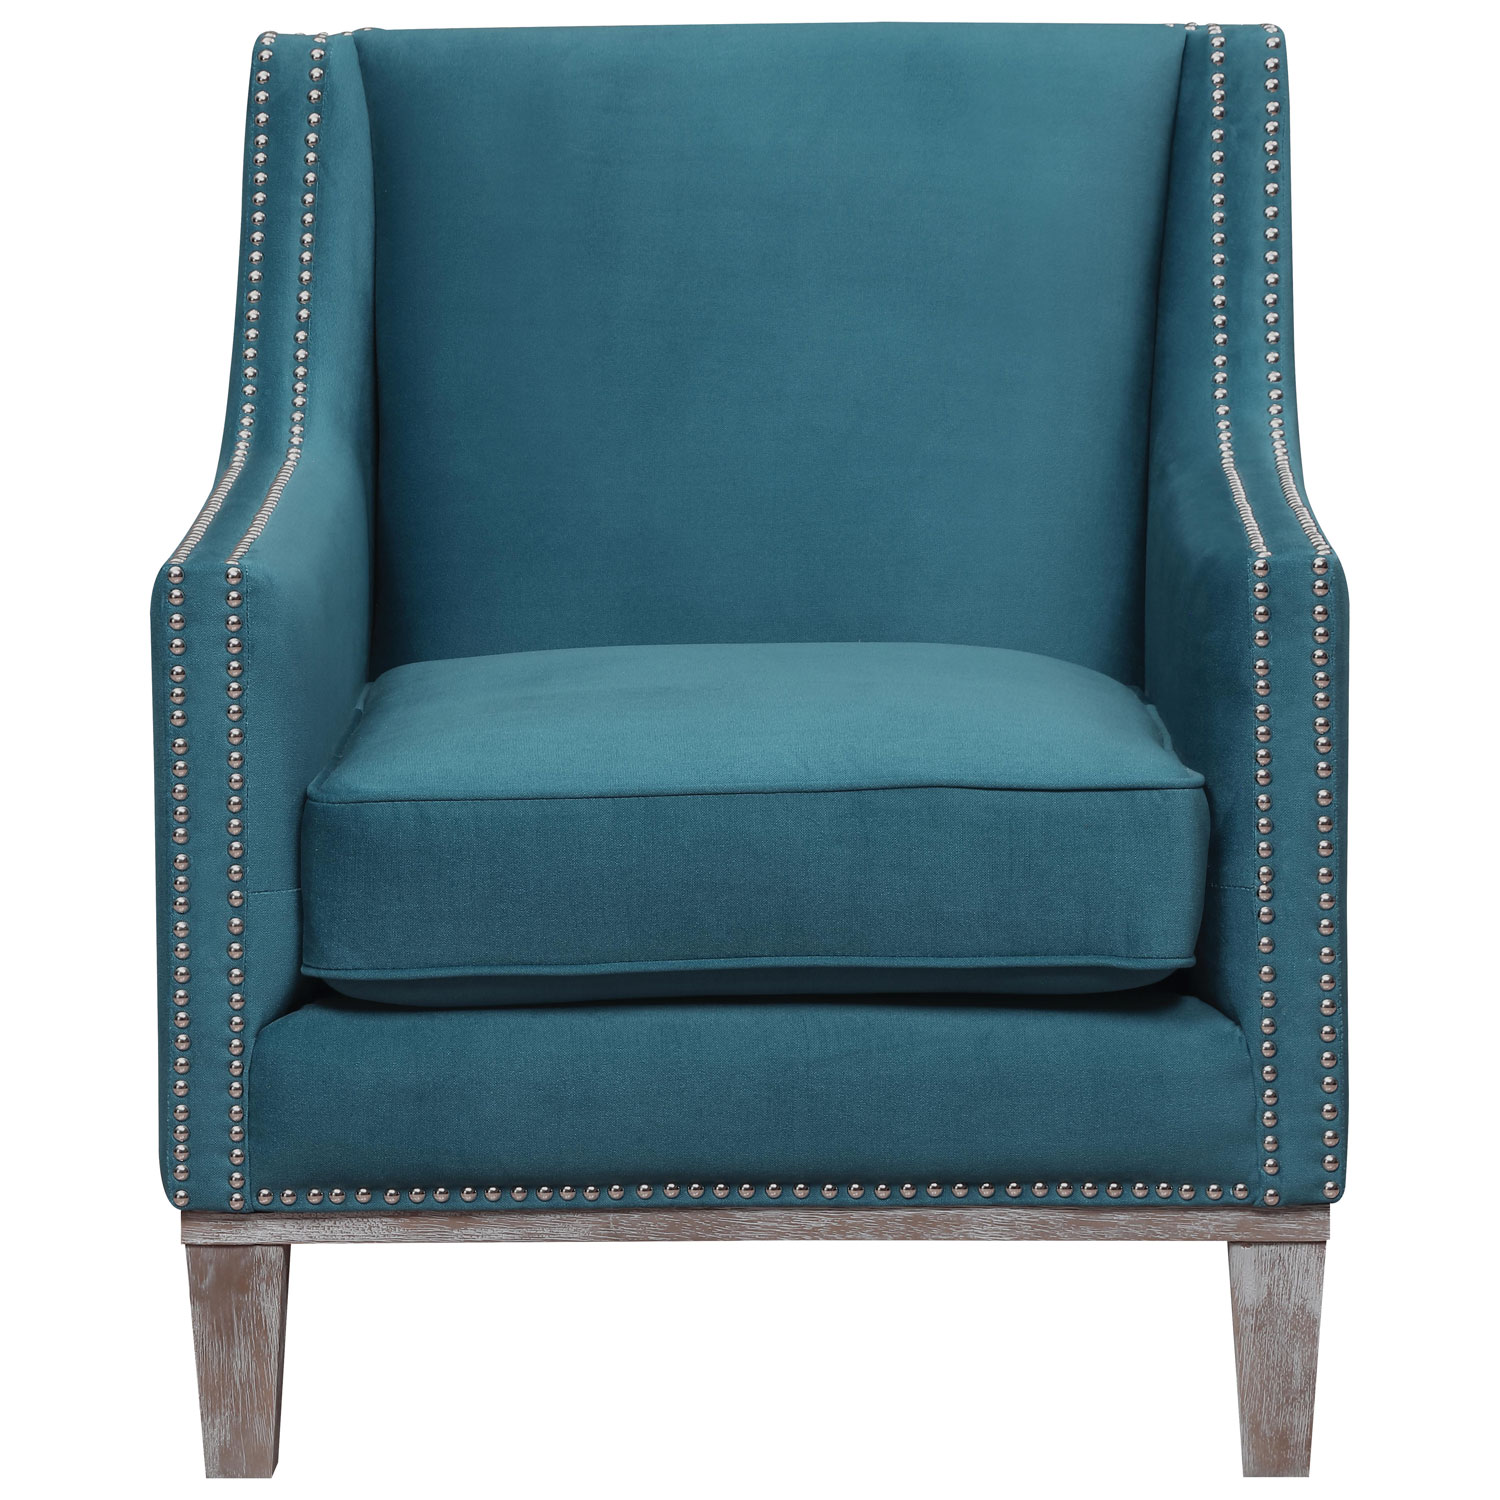 Teal Chair Augusta Transitional Polyester Accent Chair Teal Accent Chairs